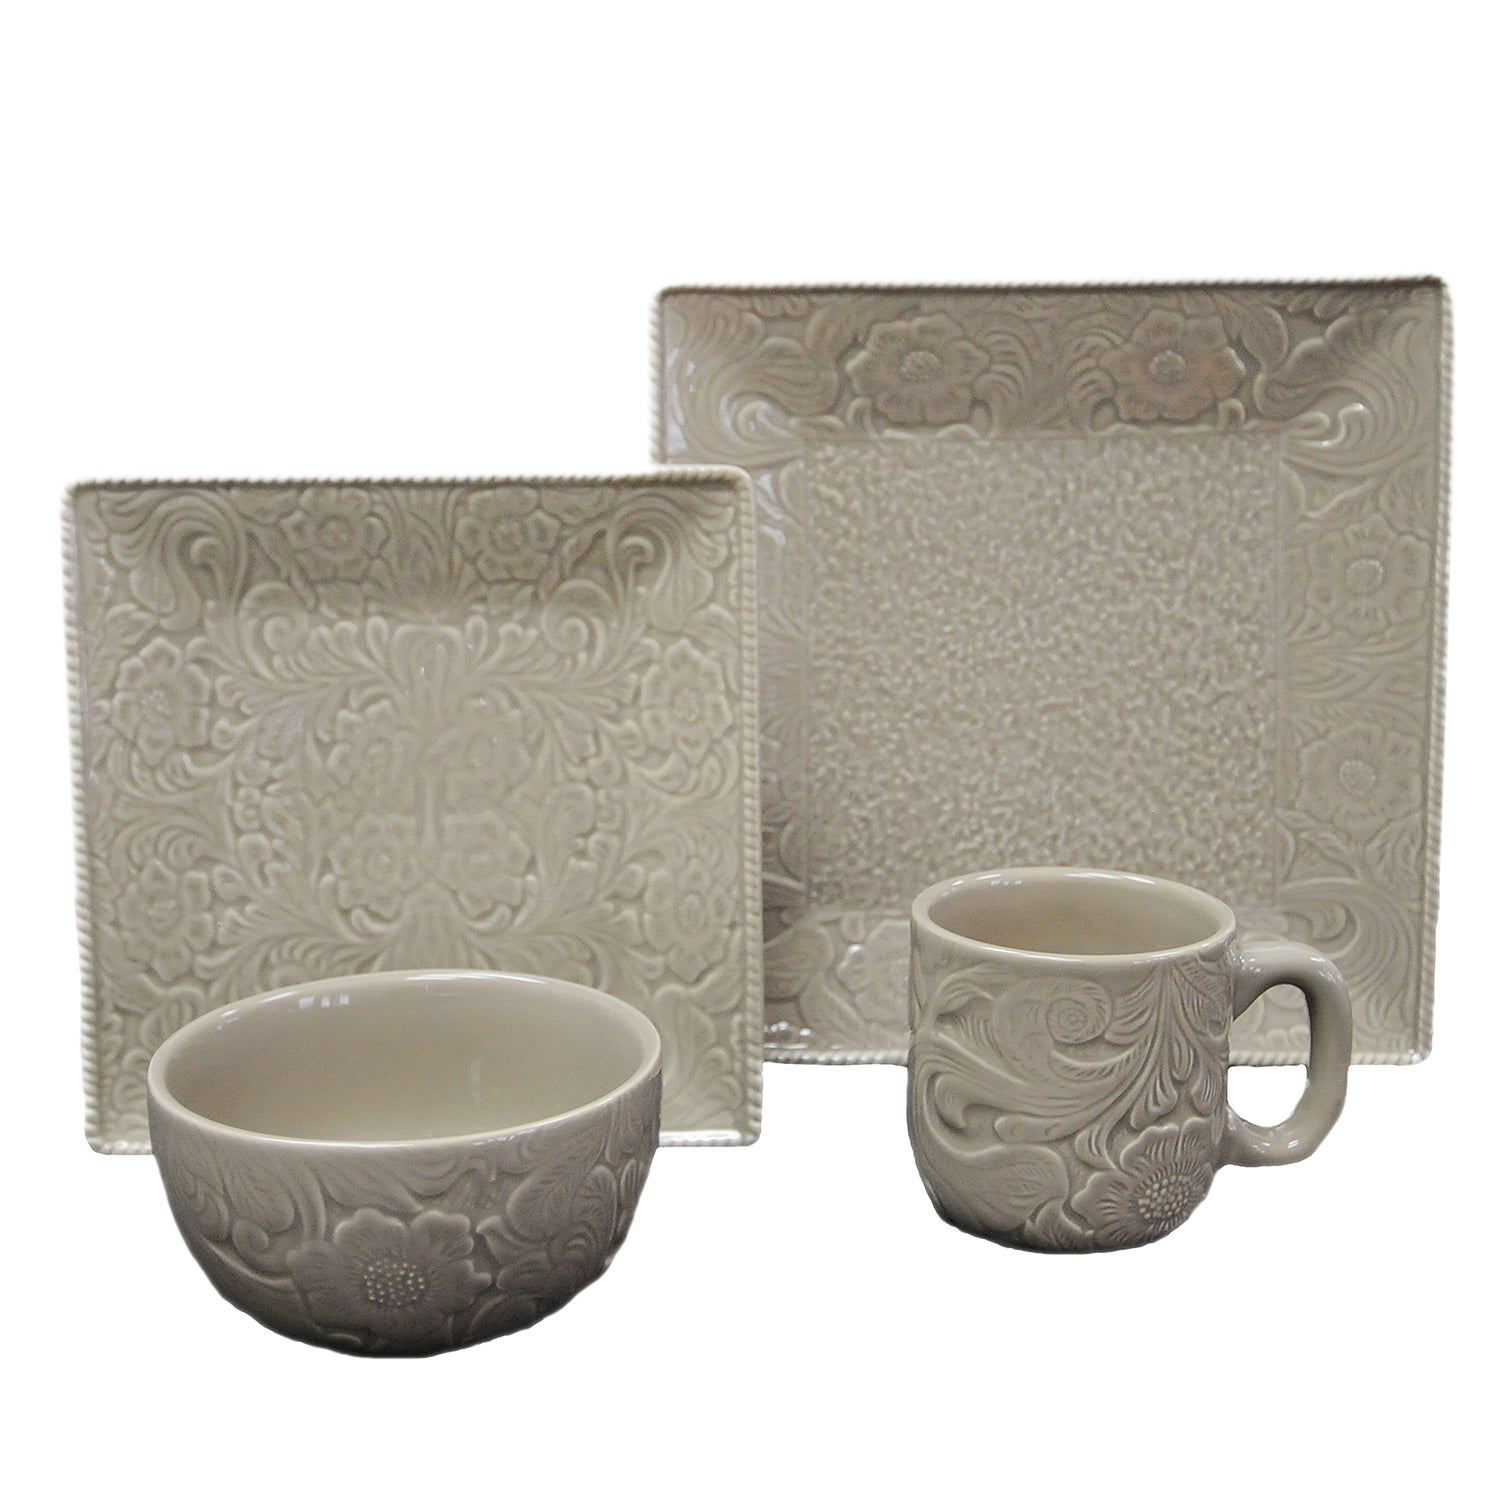 DI4001-OS-TP - 16 PC Savannah Dishes Set - Taupe by HiEnd Accents